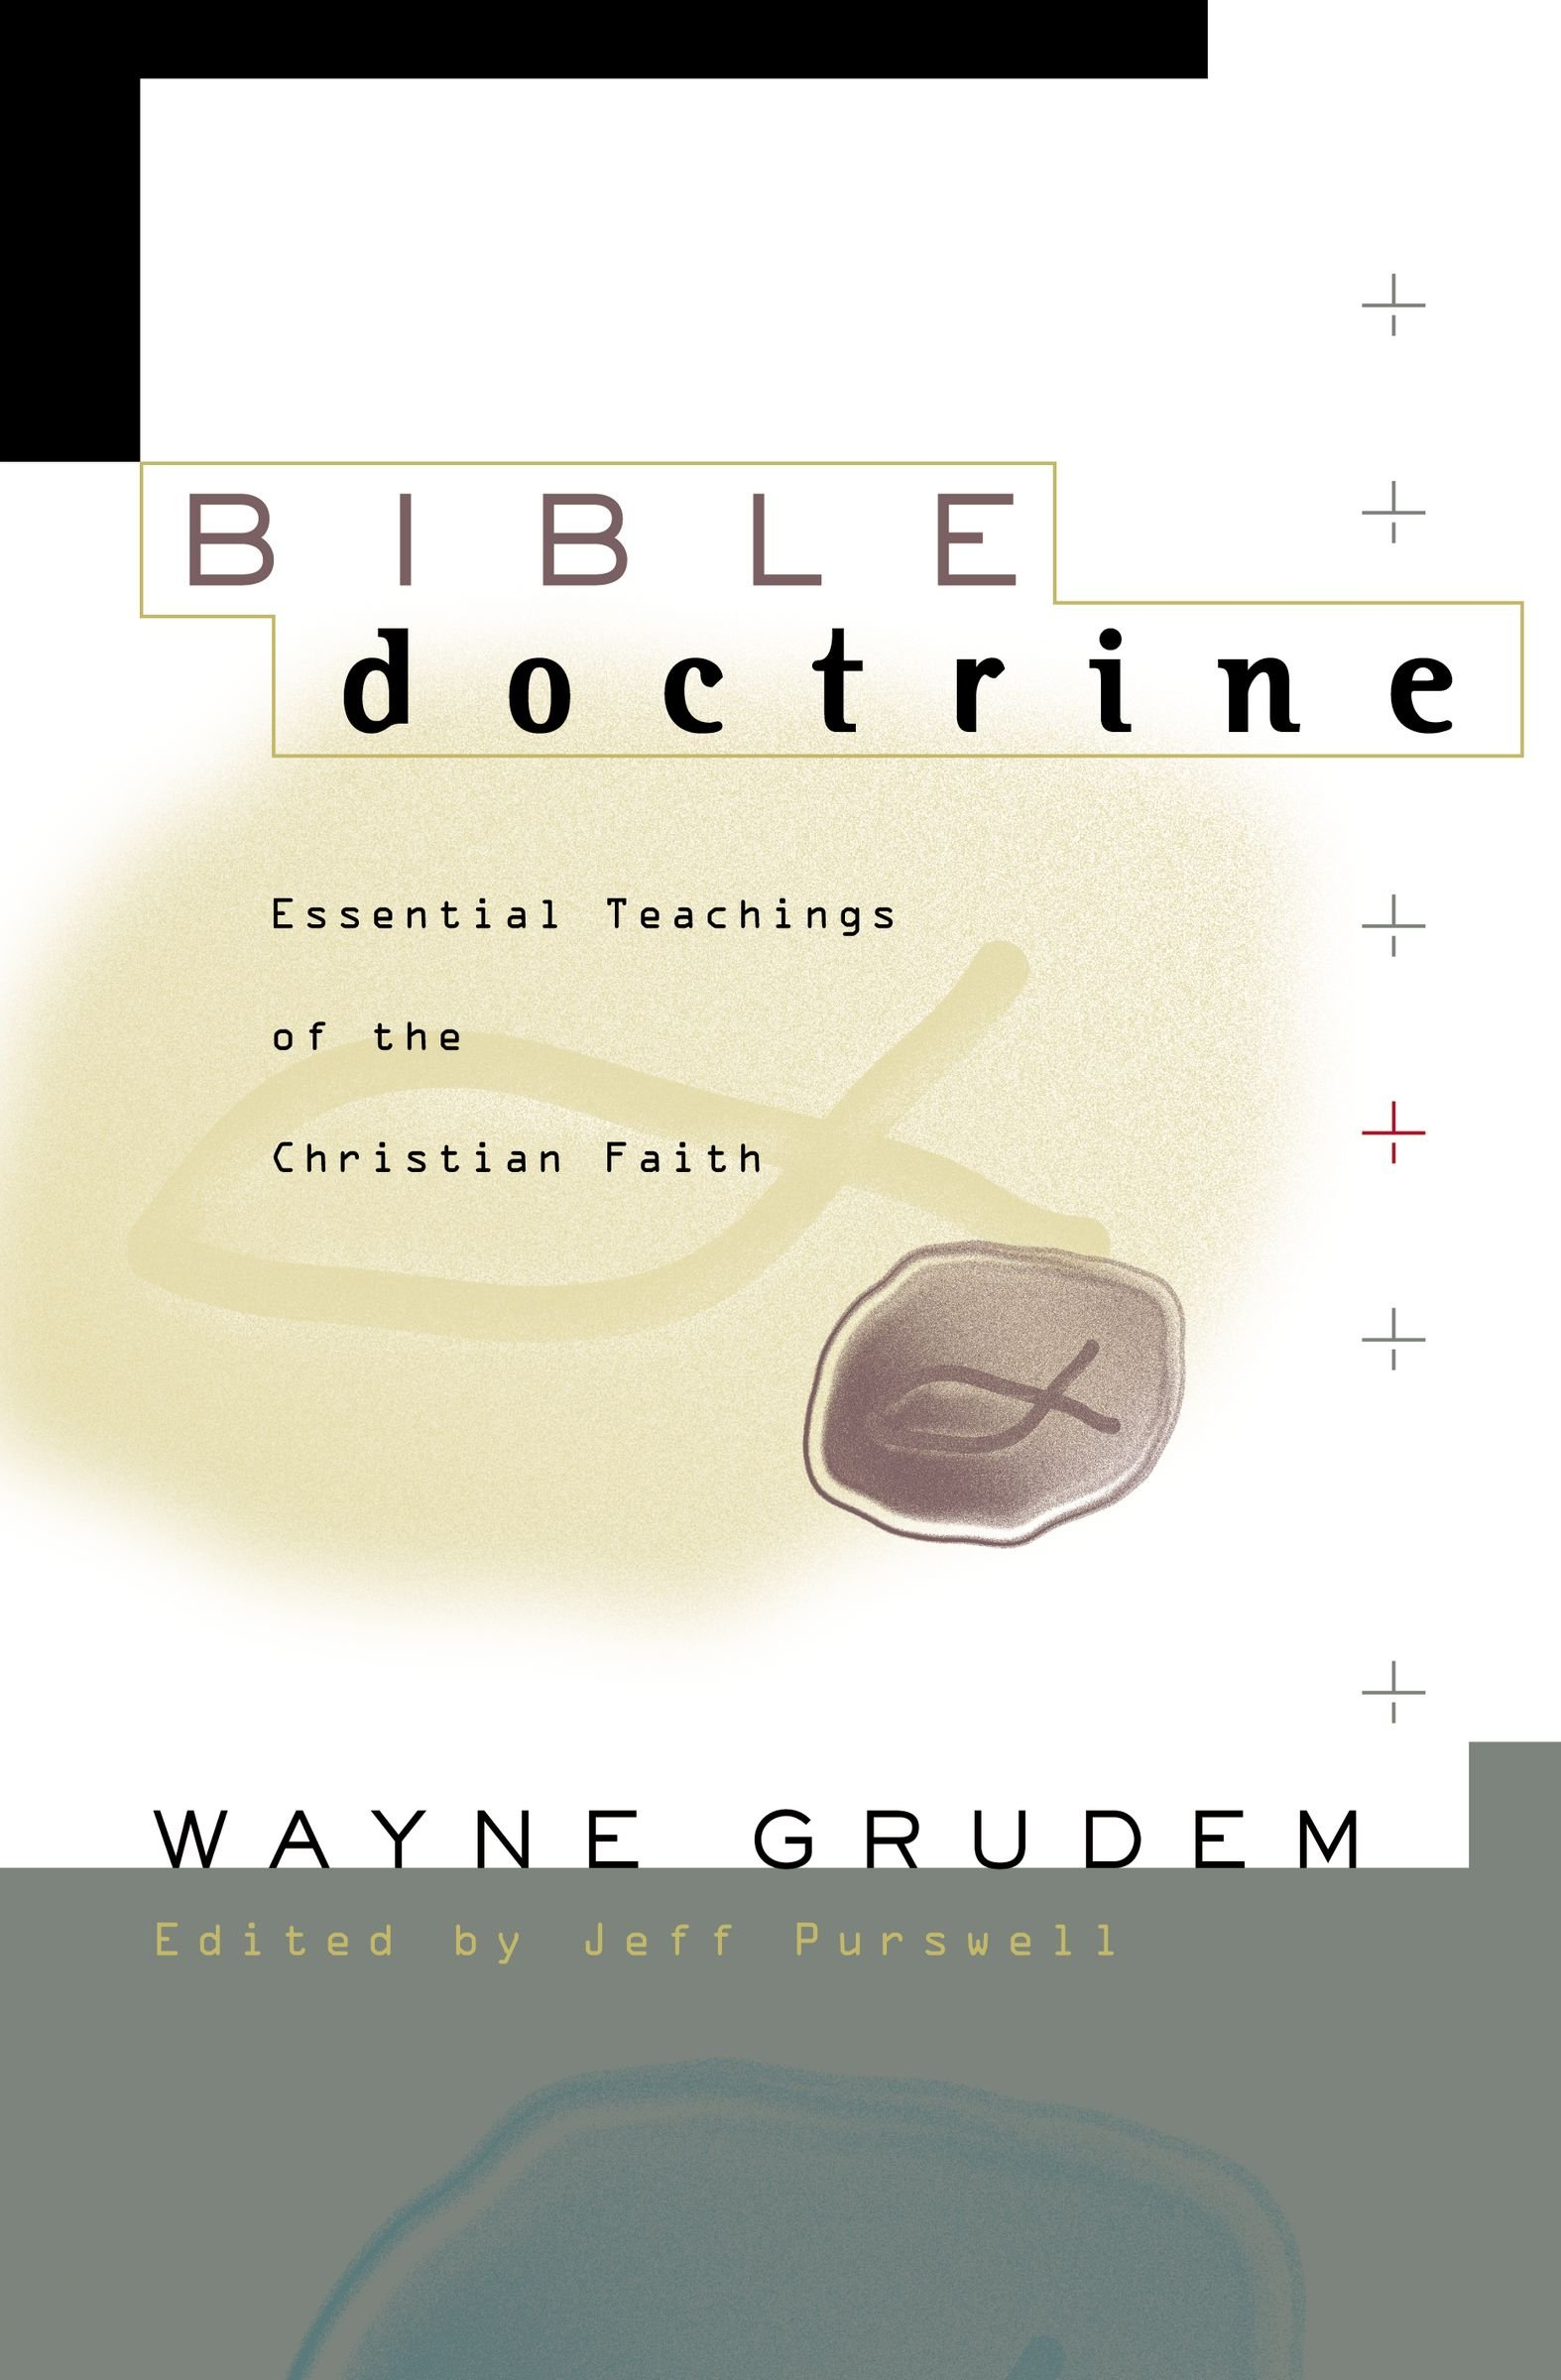 Bible Doctrine: Essential Teachings of the Christian Faith by Wayne Grudem and Jeff Purswell